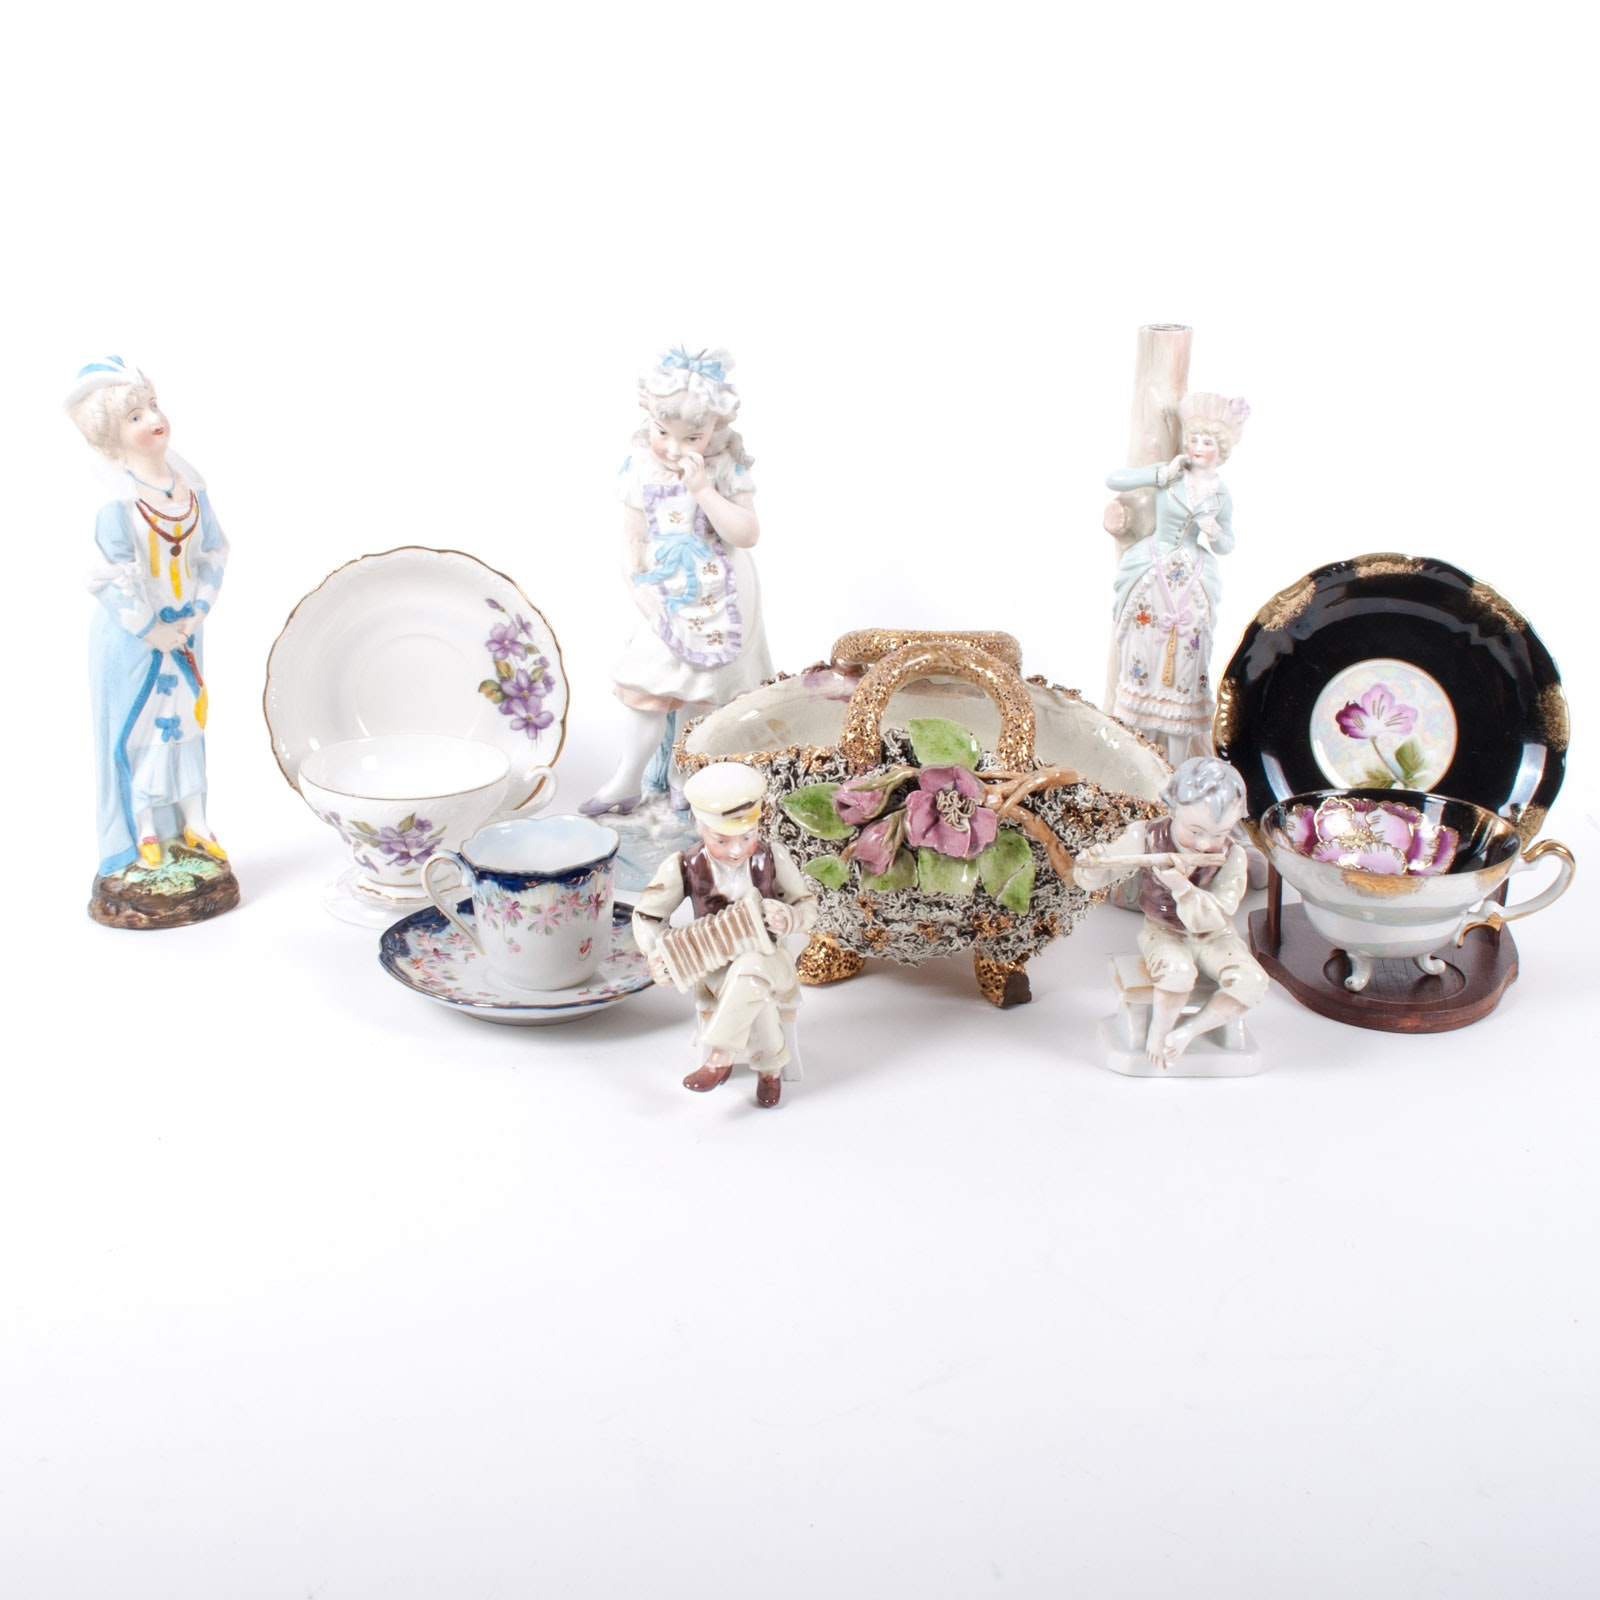 Assortment of Decorative Porcelains